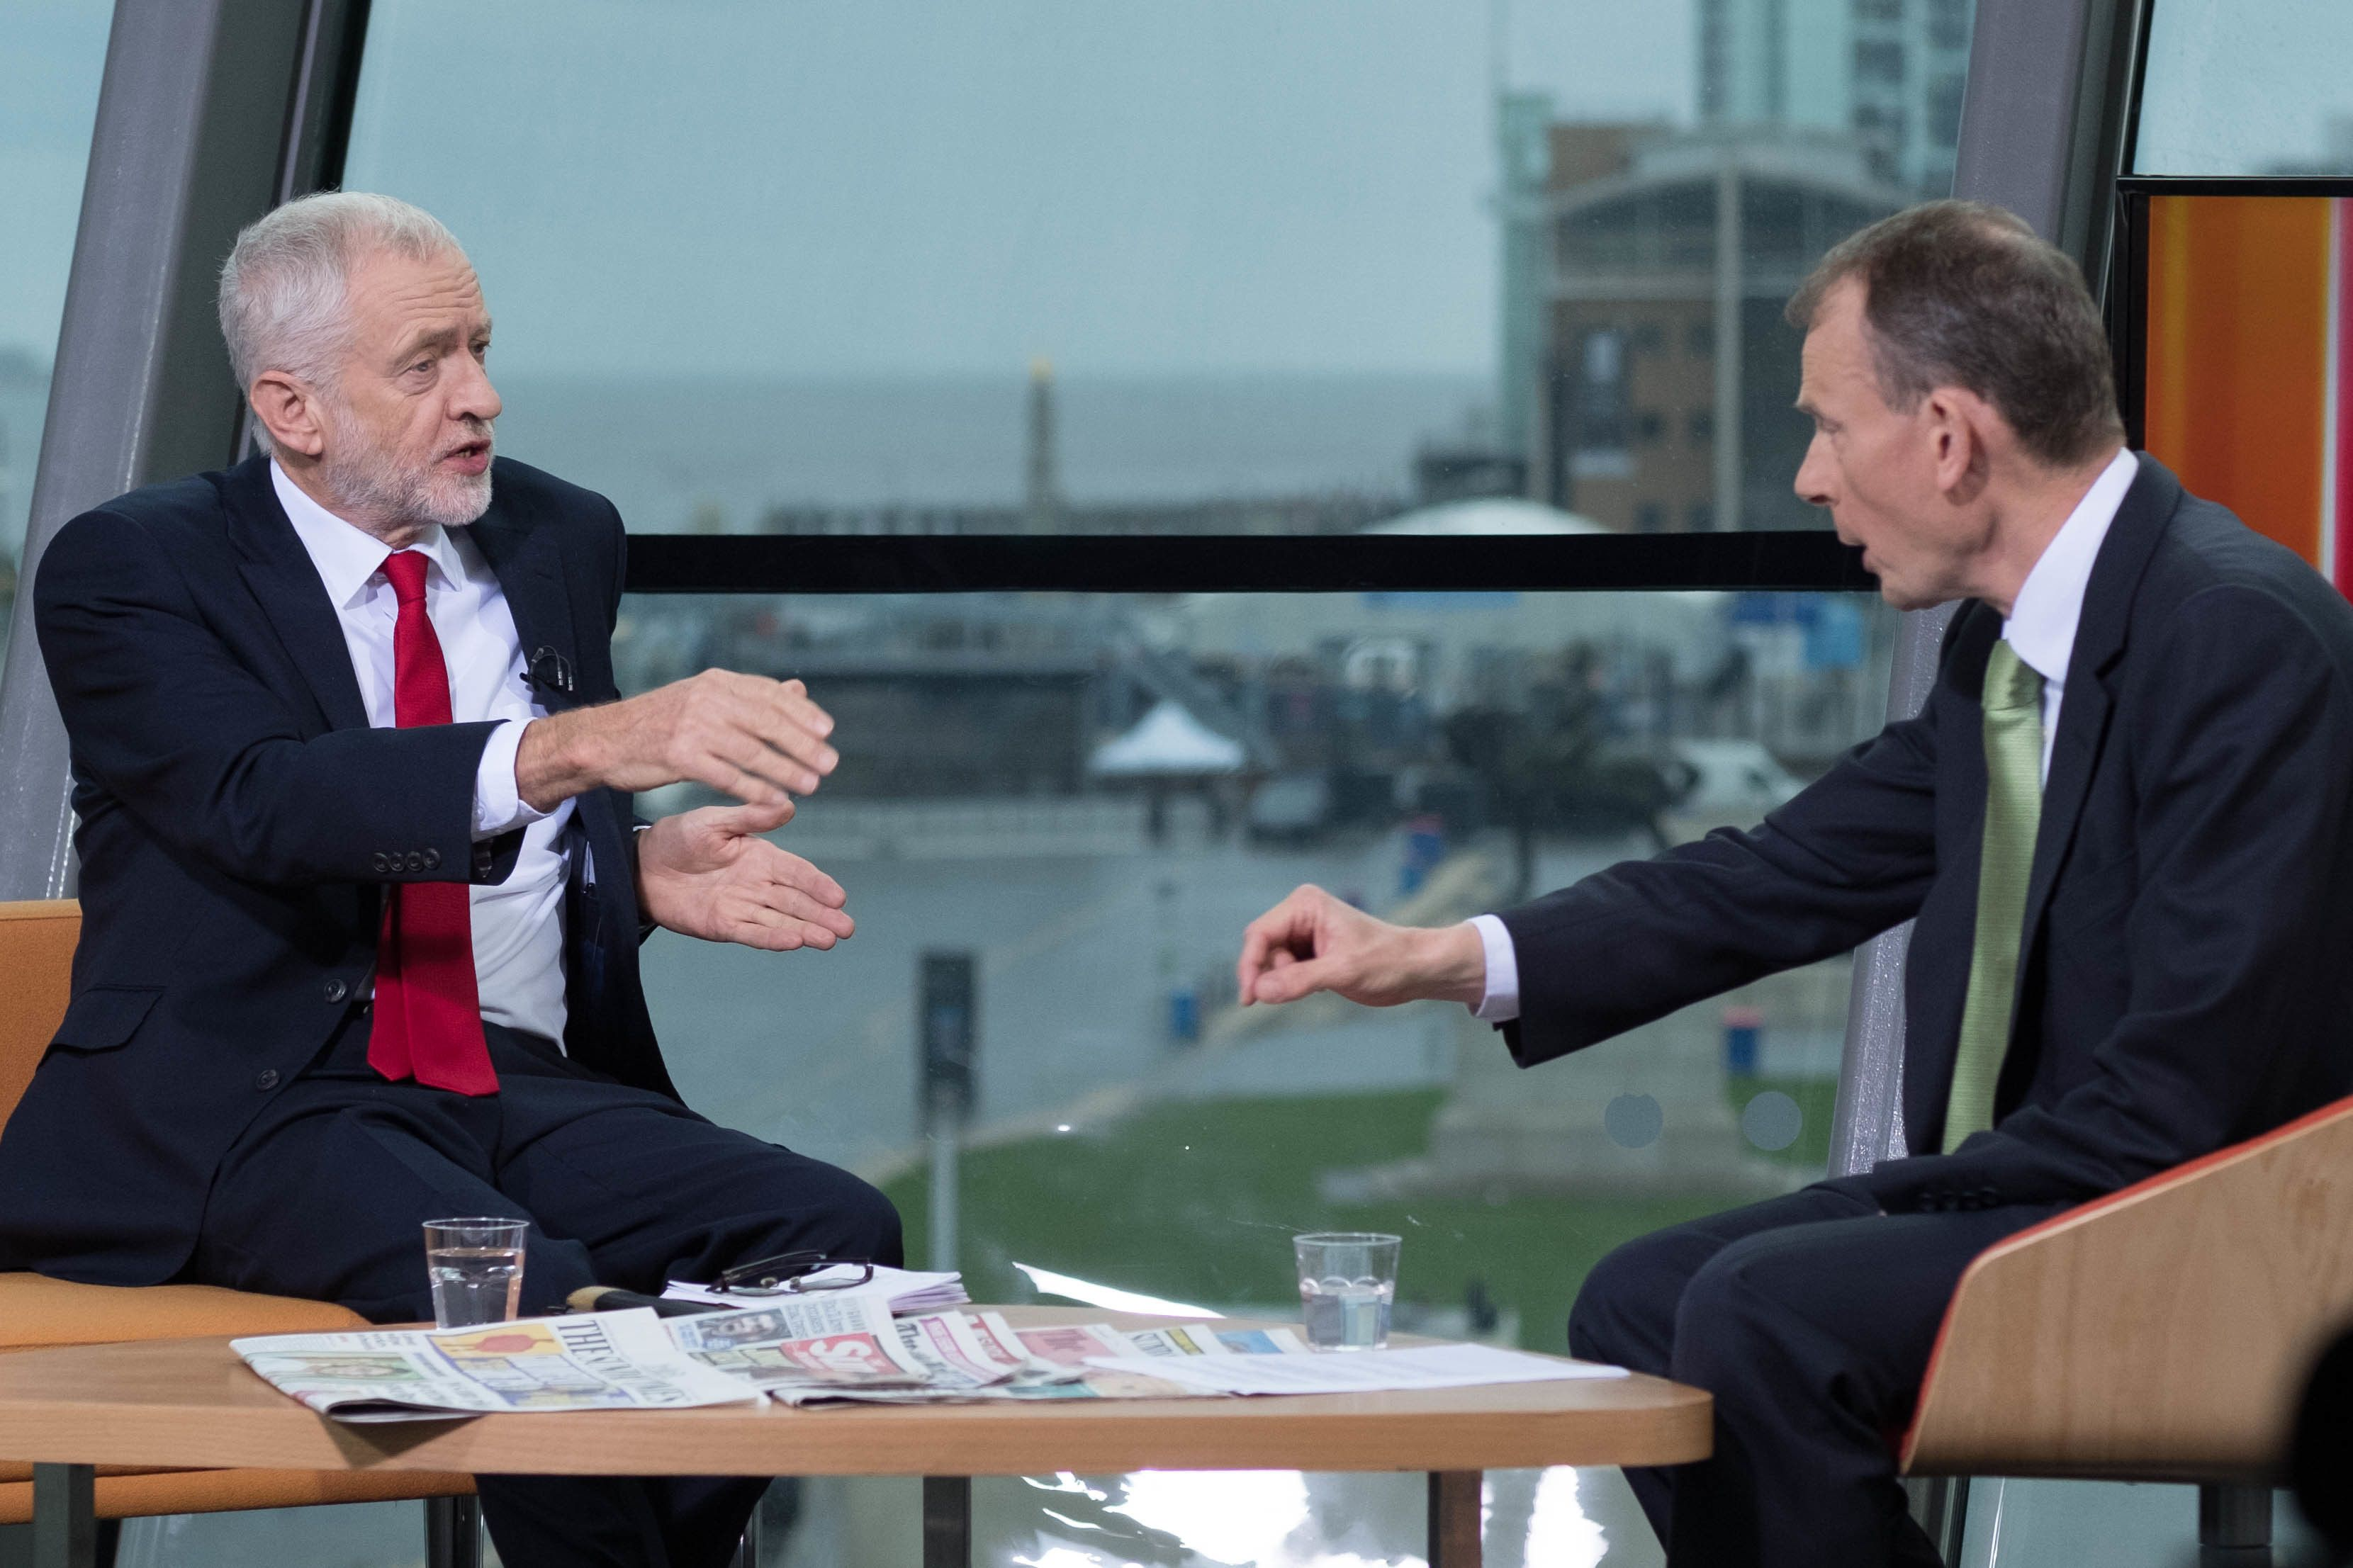 Sunday Shows Round-Up: Labour Conference, Election Speculation And